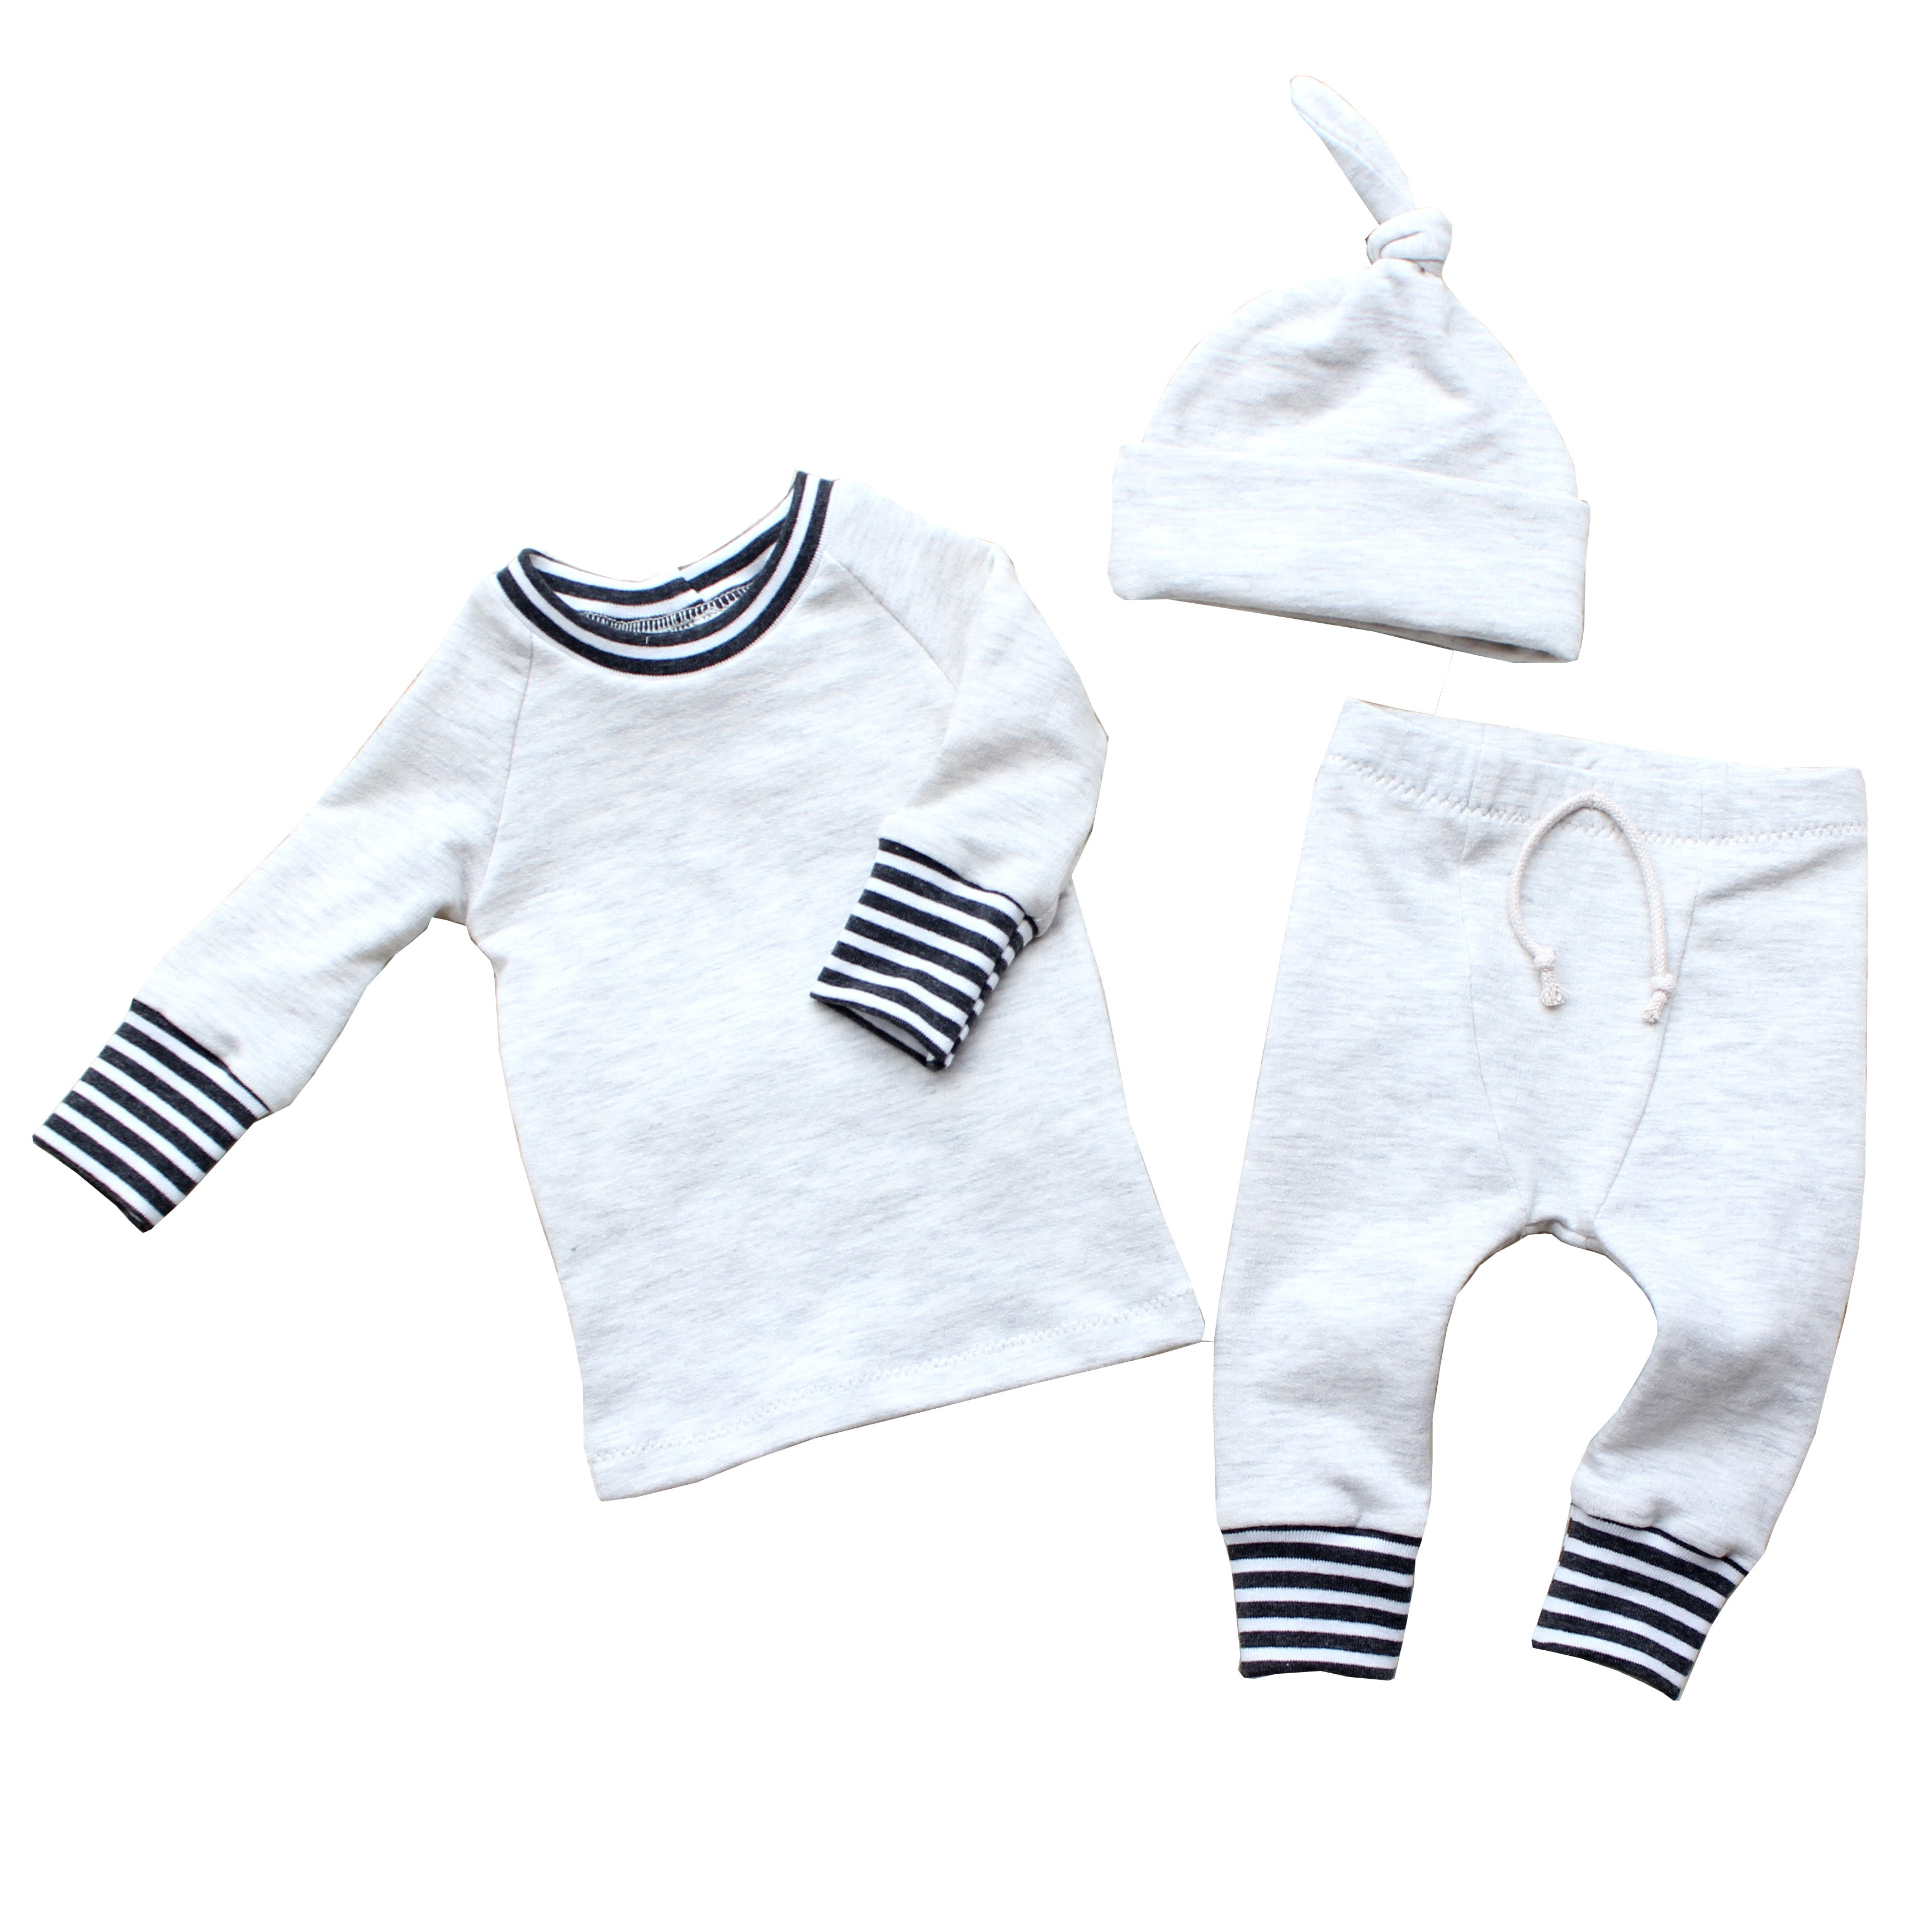 baby boy outfit in oatmeal with charcoal grey stripes